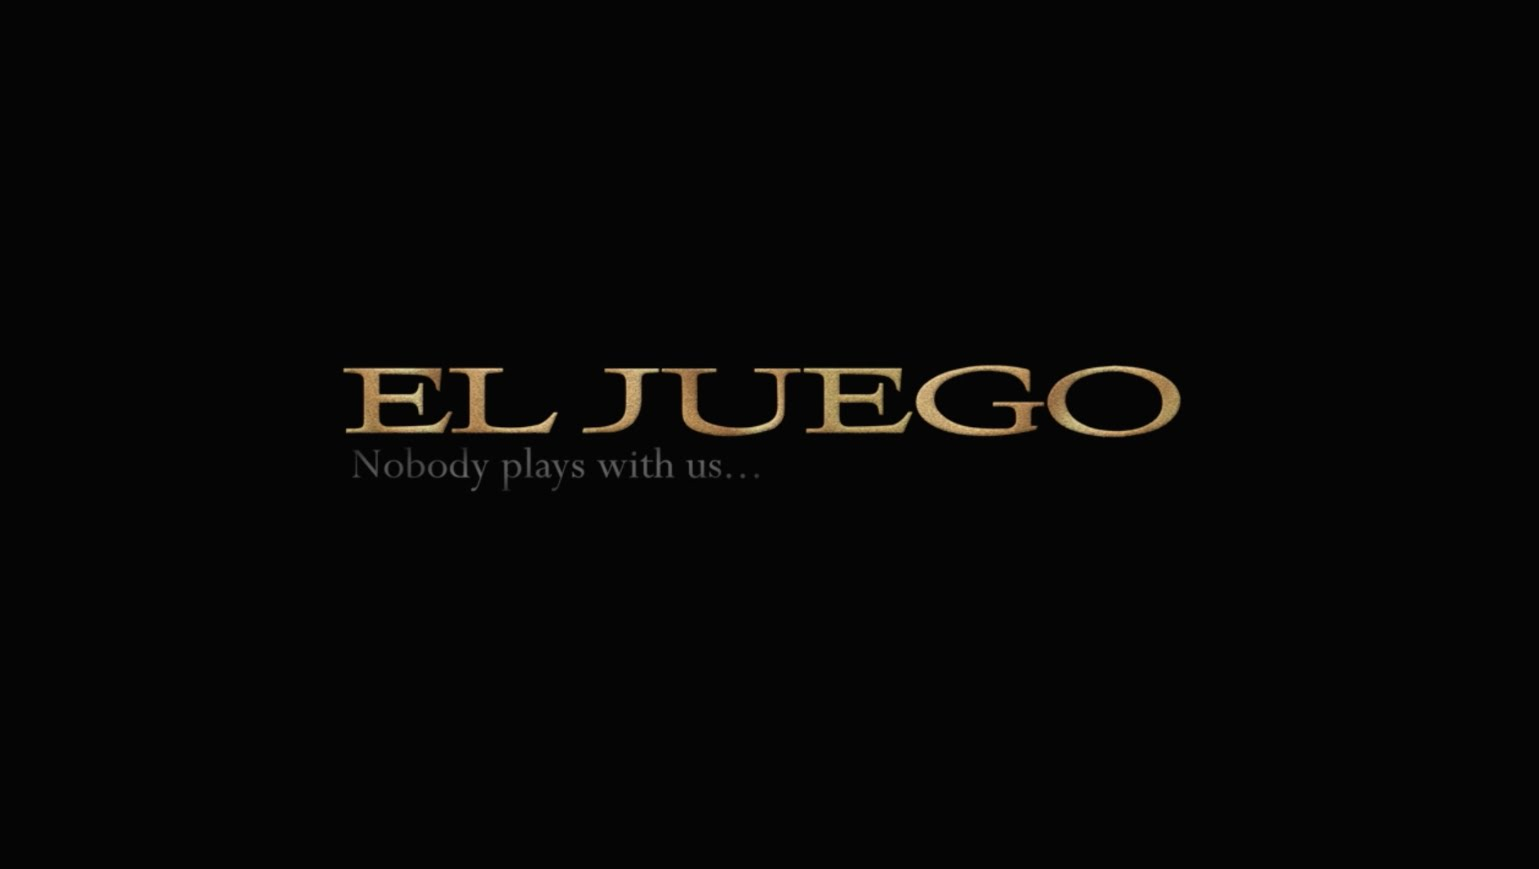 Apache ft Akapellah, Lil Supa & Gona – El Juego (Official Video)